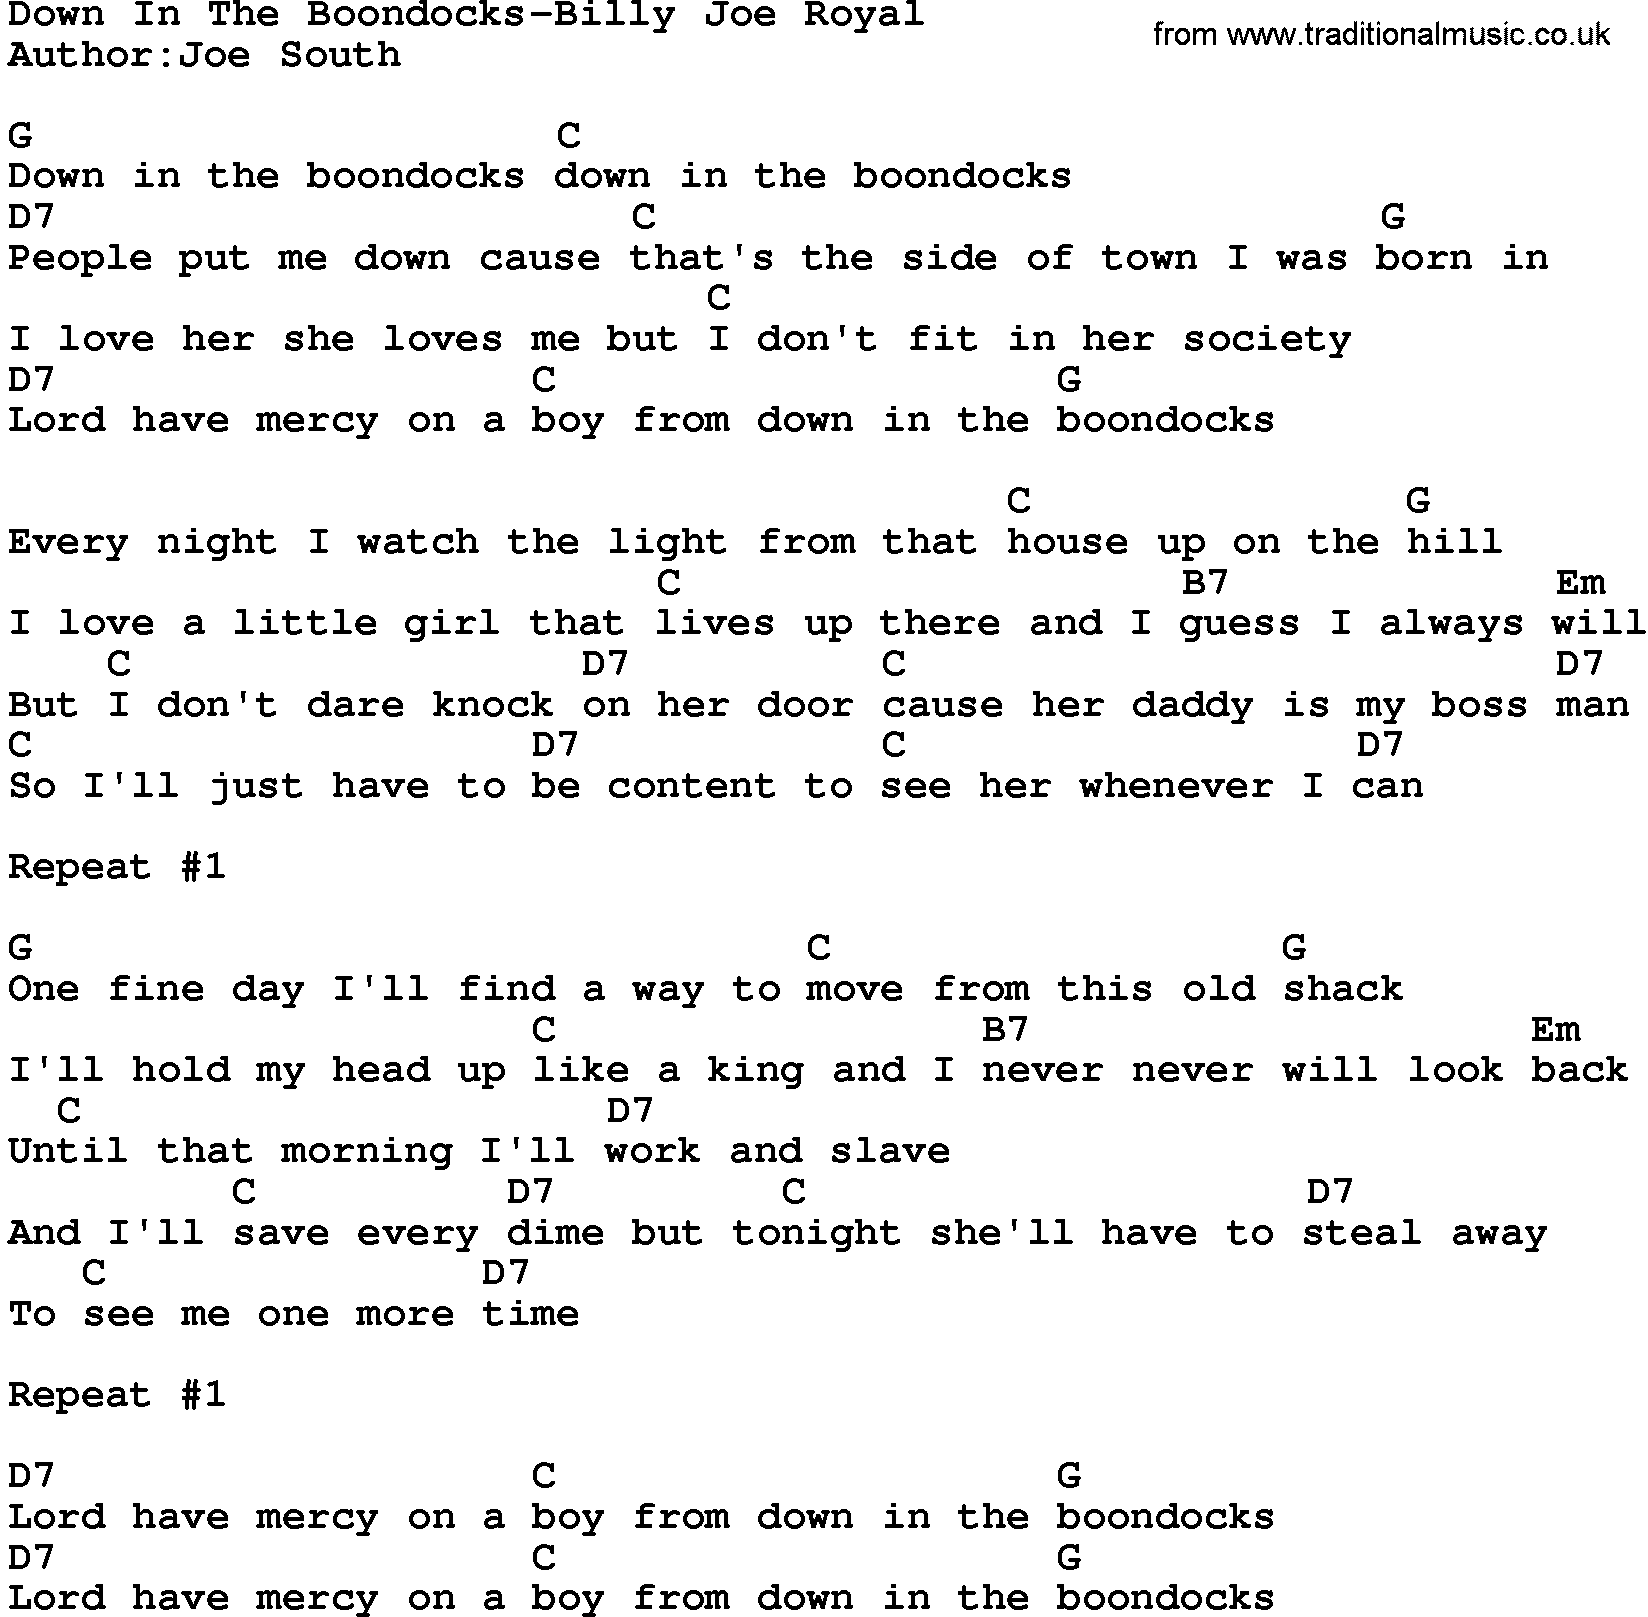 Country Musicdown In The Boondocks Billy Joe Royal Lyrics And Chords